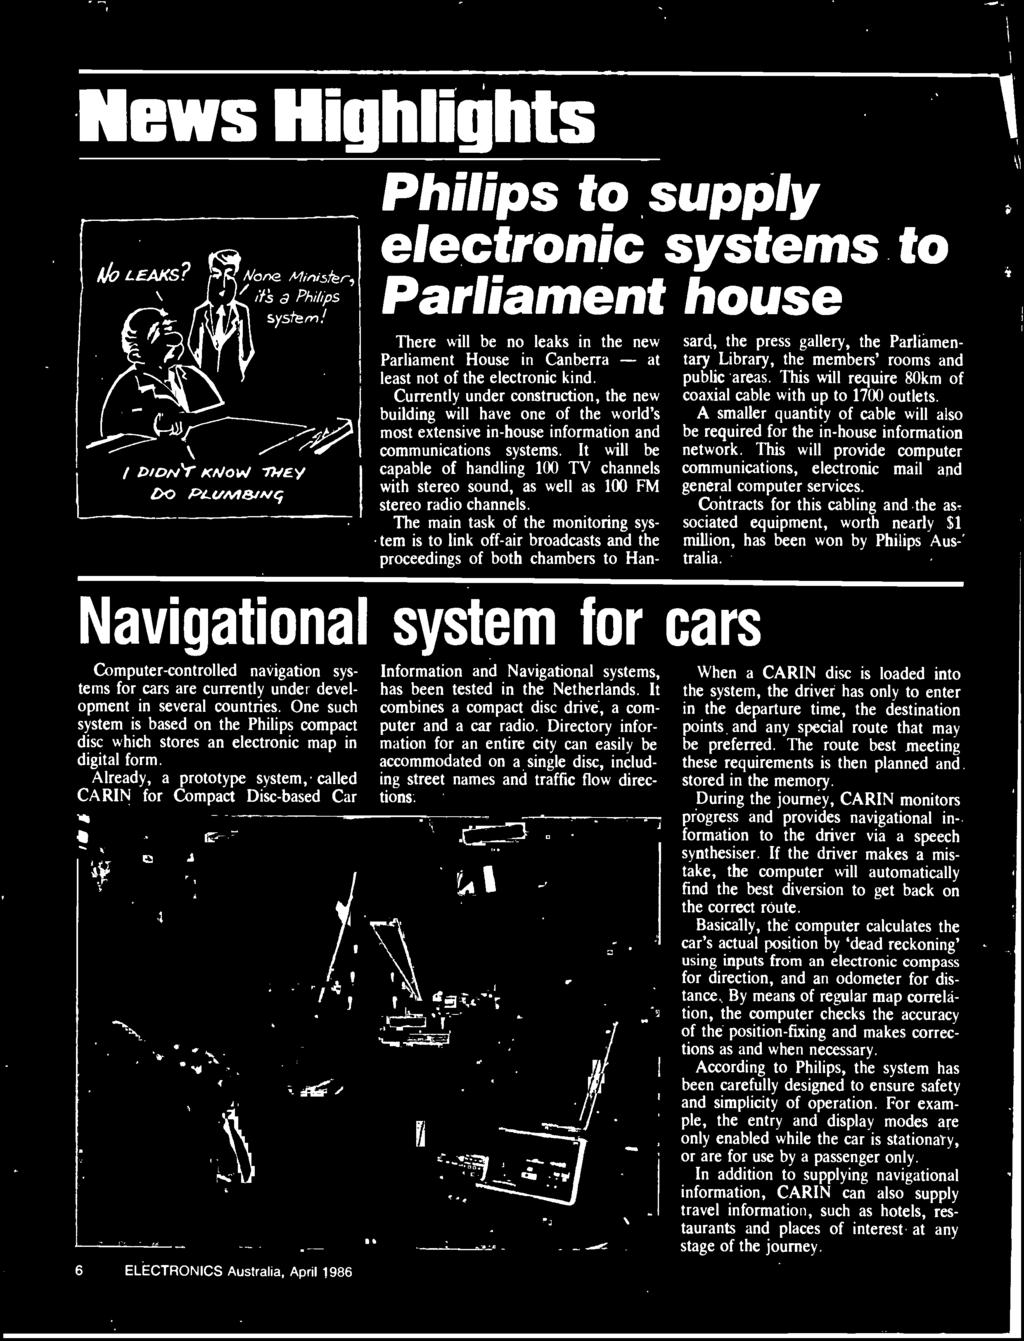 Australias Top Selling Electronics Magazine April 1986 Aust Diagram Likewise Rs232 Db9 Connector Pinout On 9 Pin Din Cable The Main Task Of Monitoring System Is To Link Off Air Broadcasts And